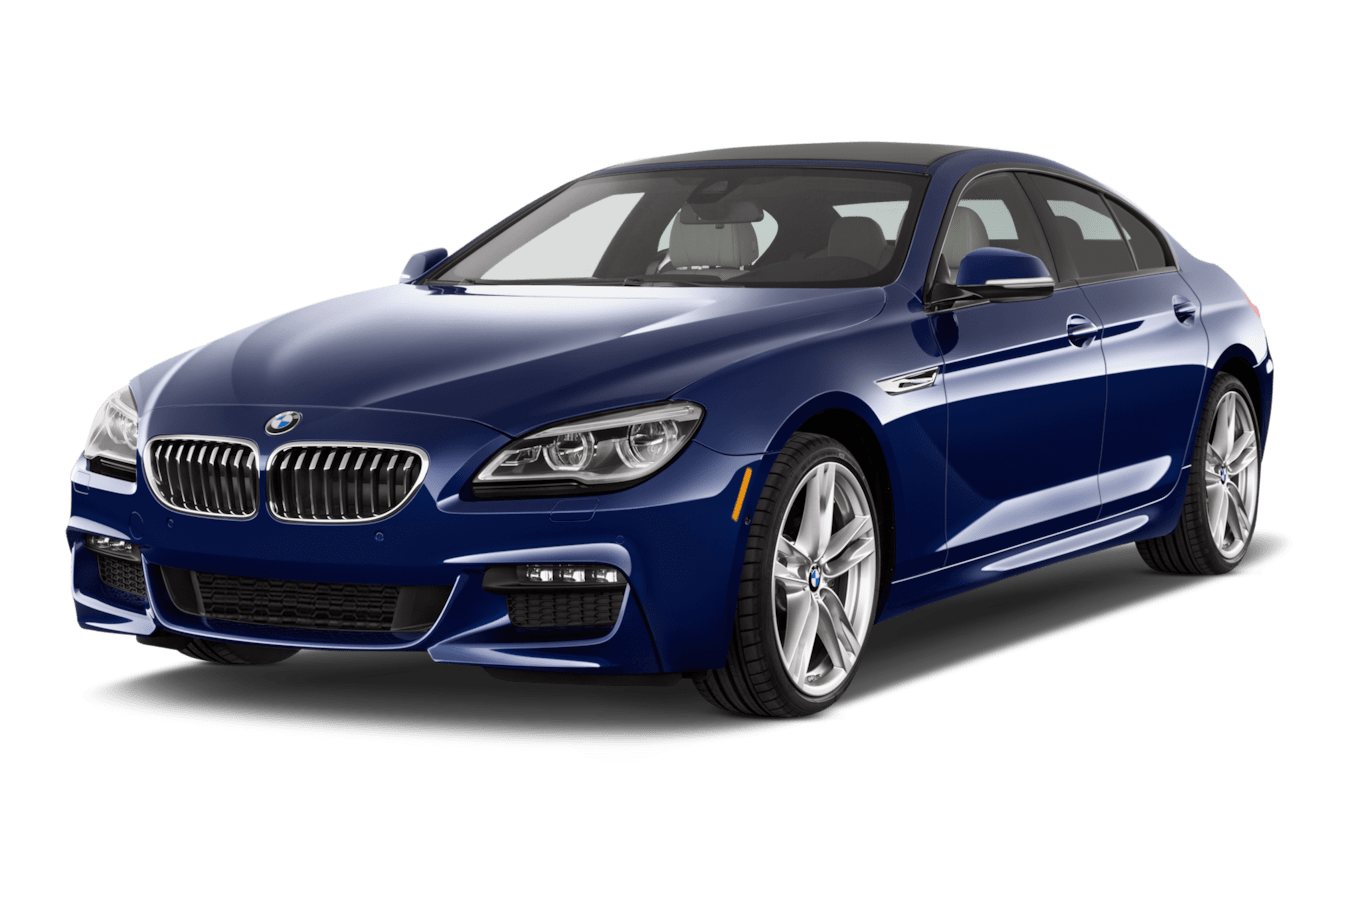 small resolution of 2014 bmw 535i fuse box location trusted wiring diagram 2014 bmw 535i fuse box location